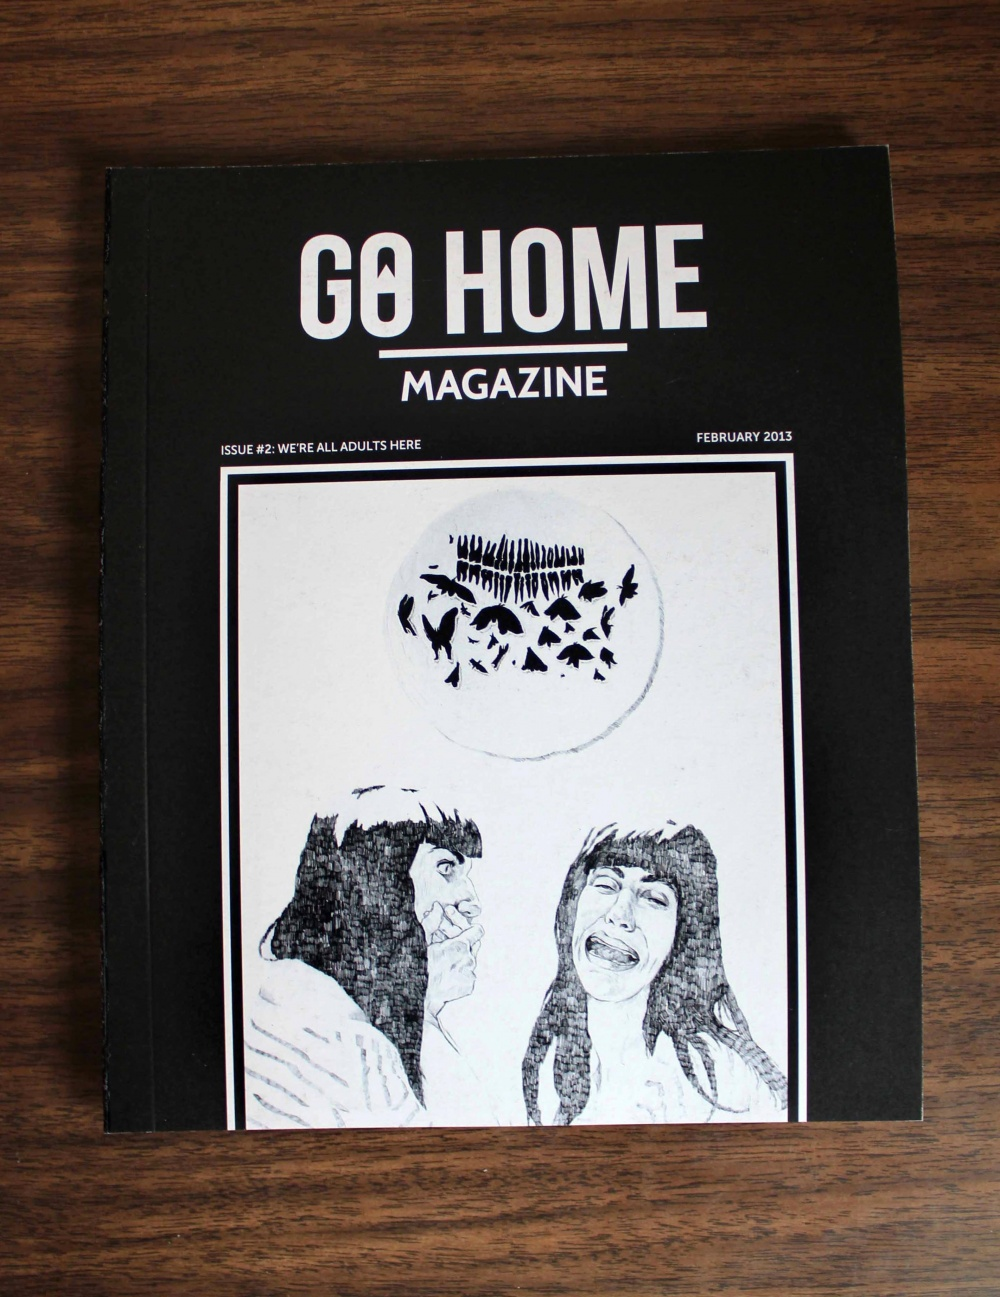 Go Home Magazine Issue #2: We're all adults here